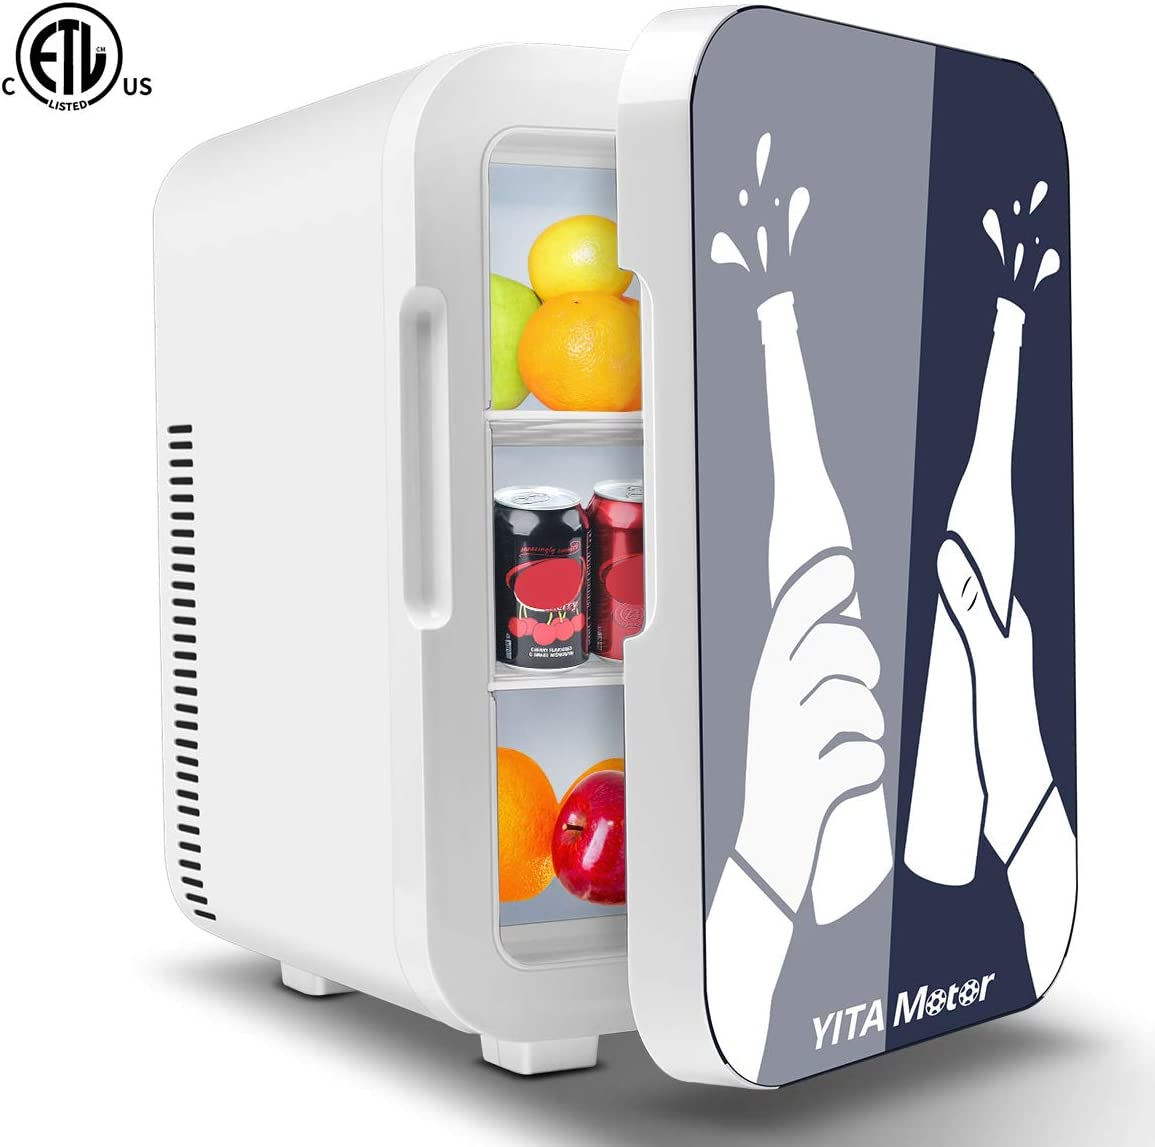 YITAMOTOR Mini Fridge 10 Liter Compact Portable Personal Cooler and Warmer Refrigerators for Bedroom, Car, Office, Dorm, Travel, Foods, Beverage, Beer, Medications, Blue